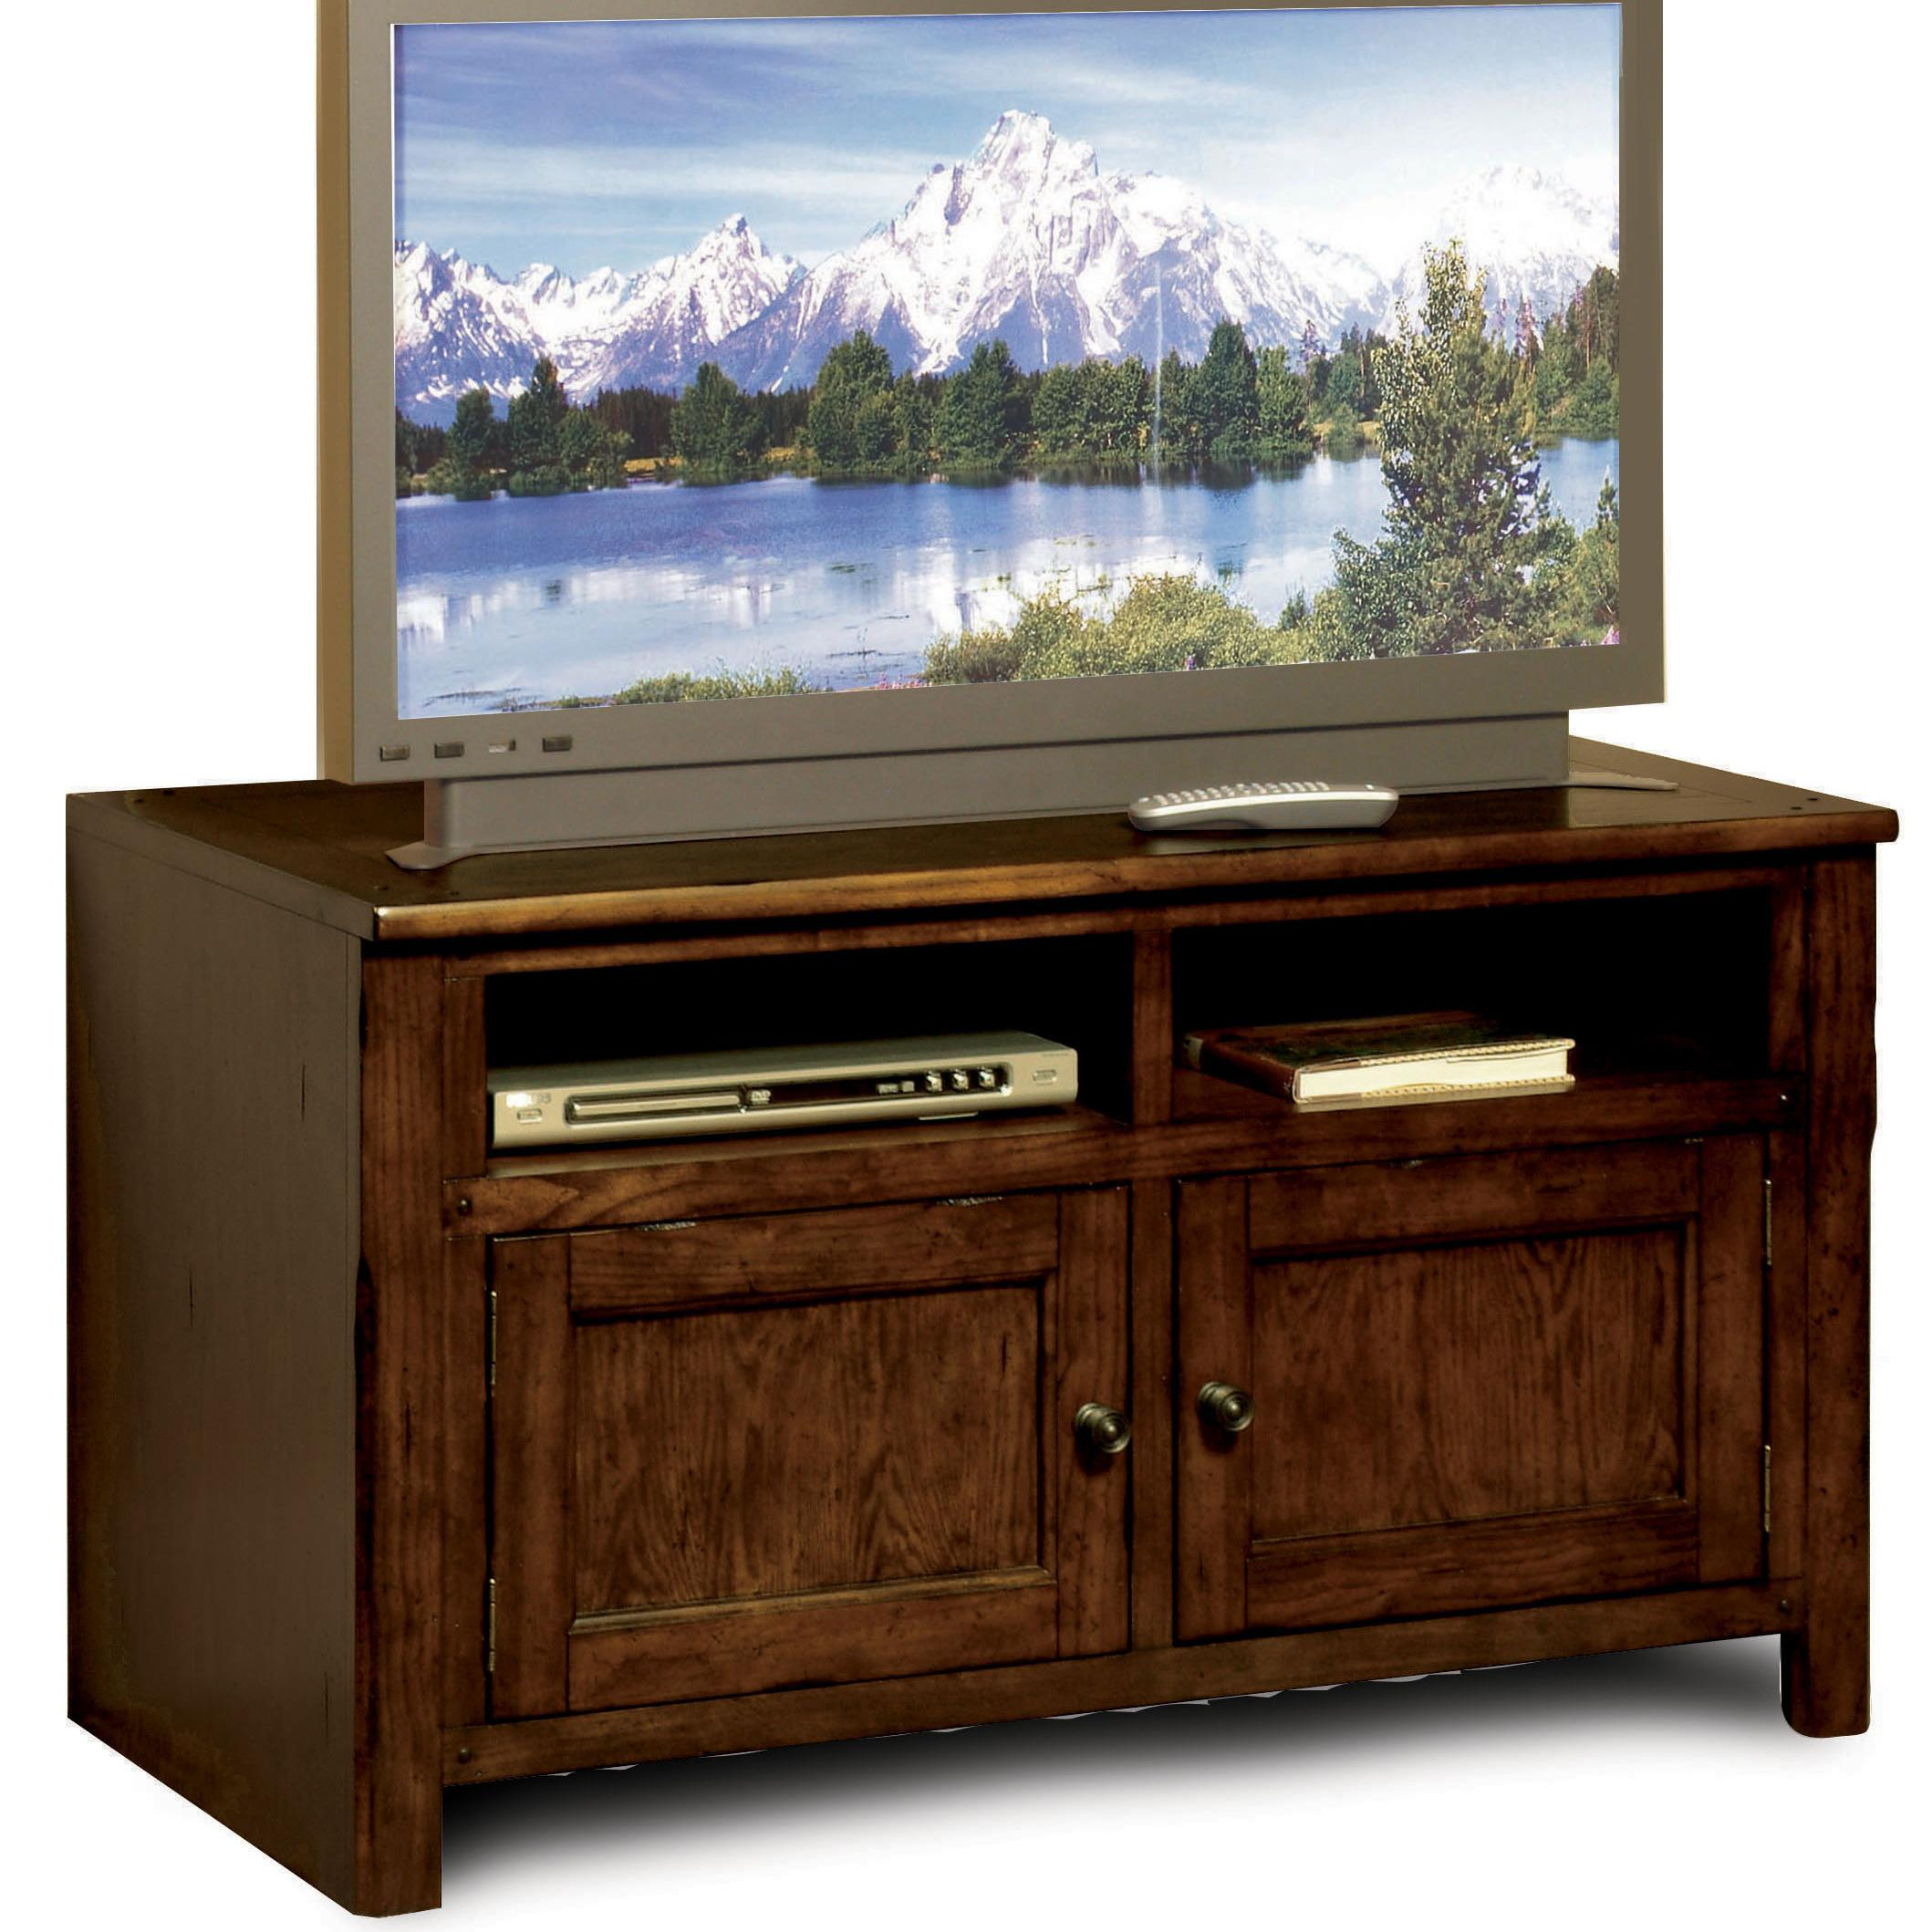 American furniture grand junction co - Broyhill Furniture Grand Junction Media Stand Royal Furniture